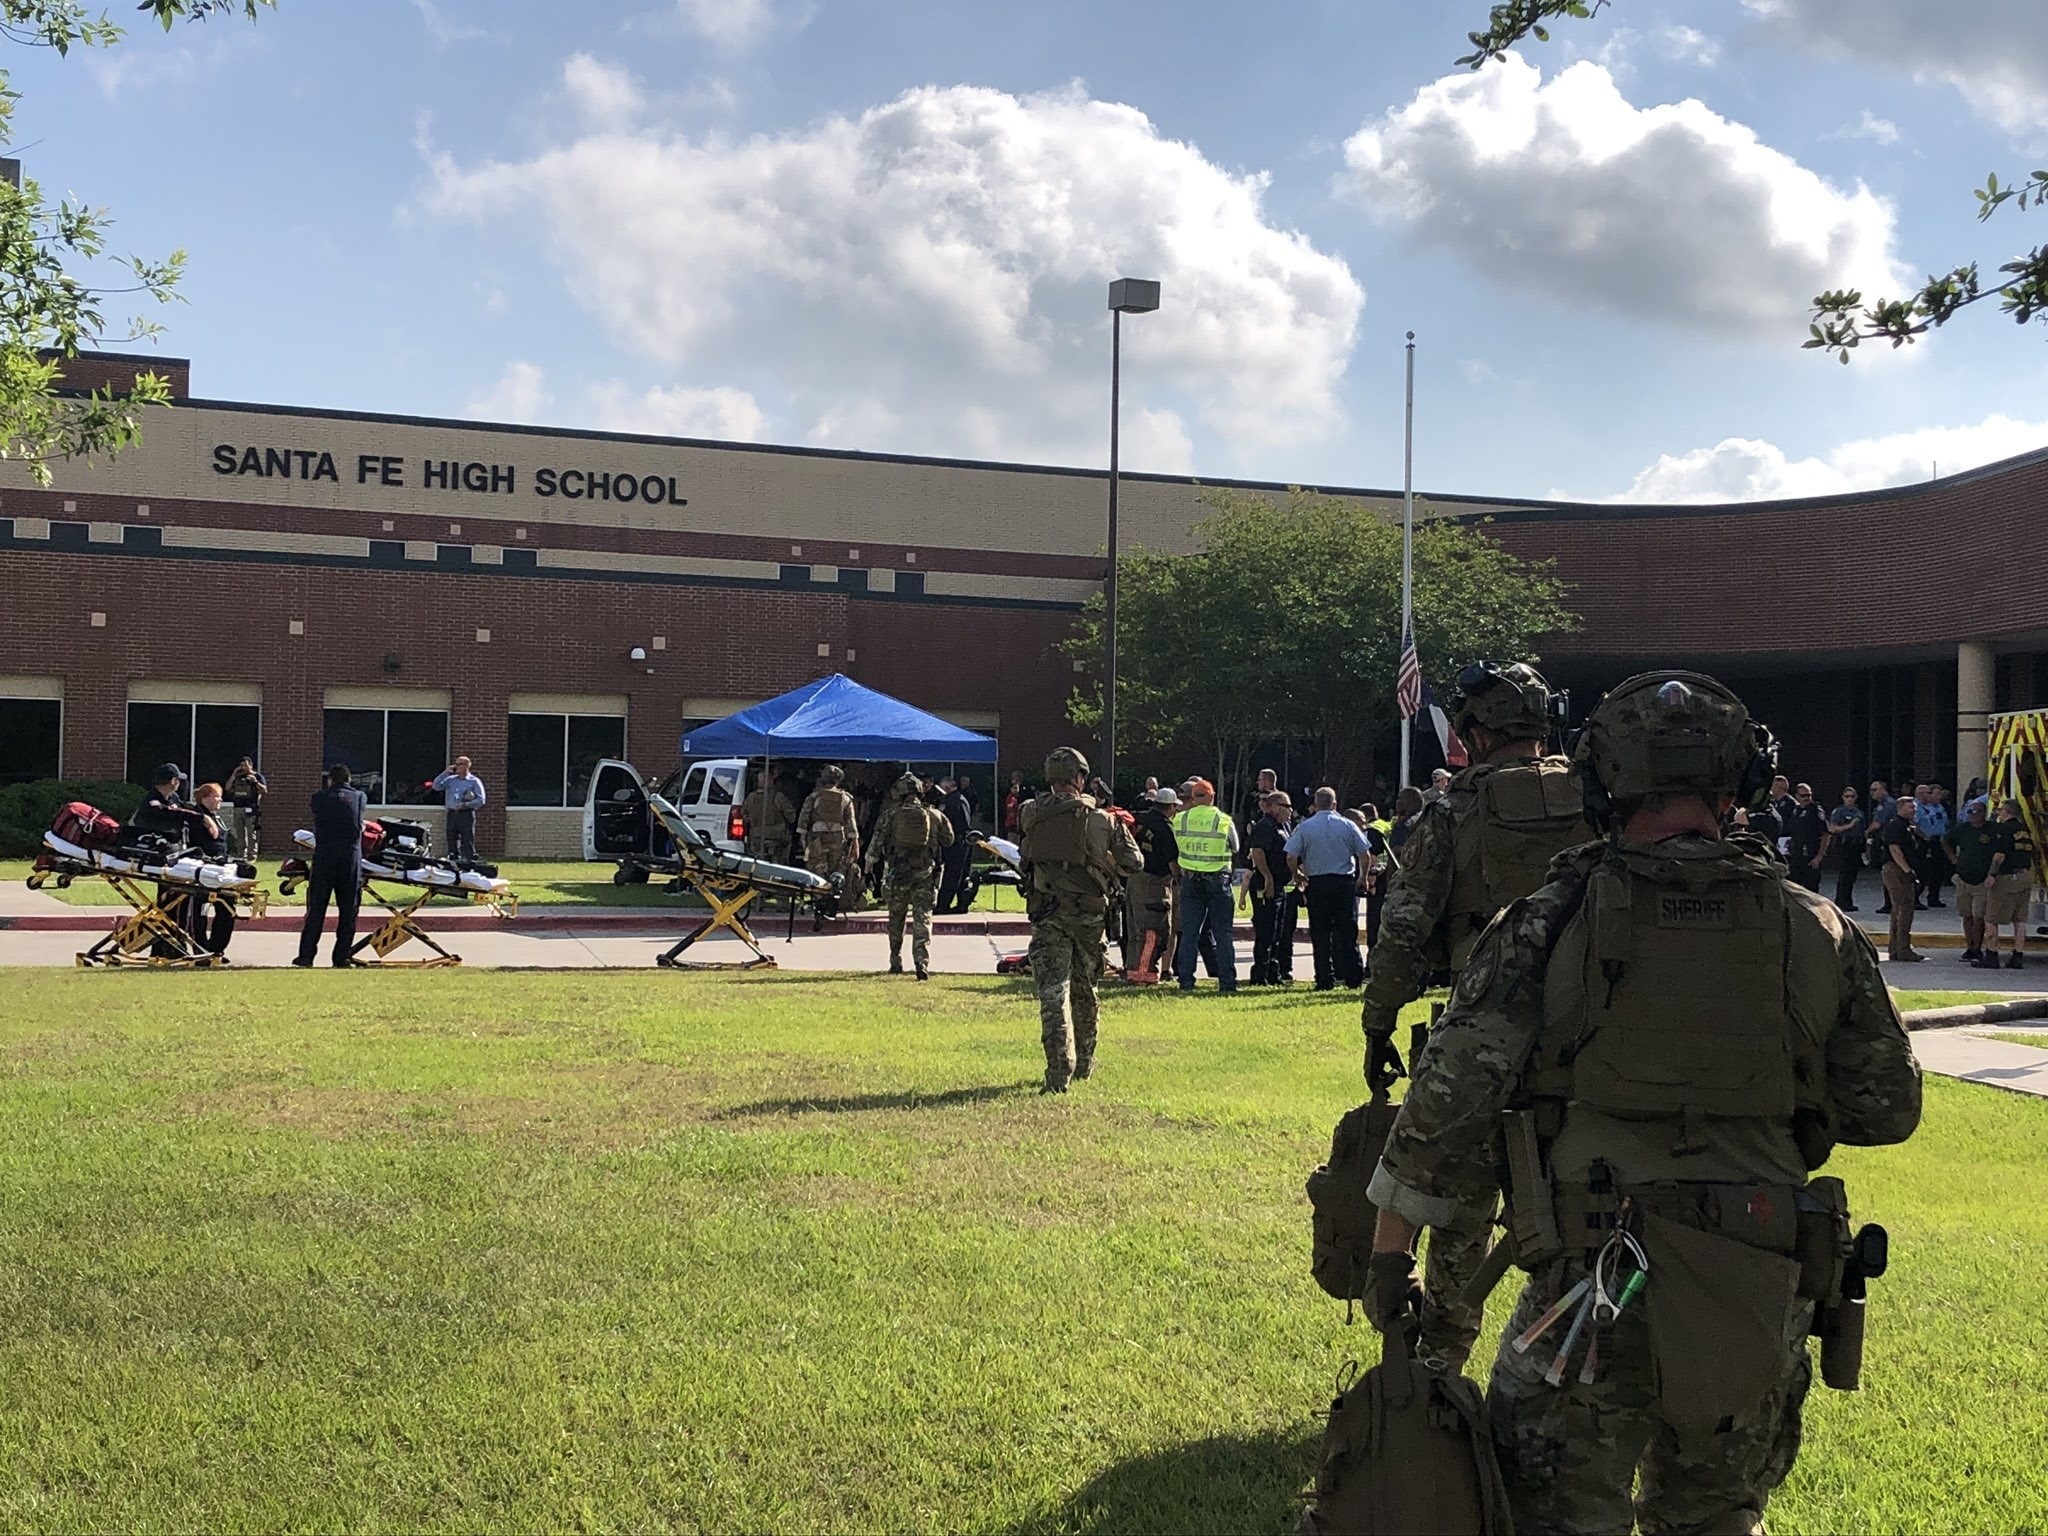 Law enforcement agencies are deployed at Santa Fe High School, located in Galveston County, because of the shooting incident that happened in the morning of May 18, 2018.